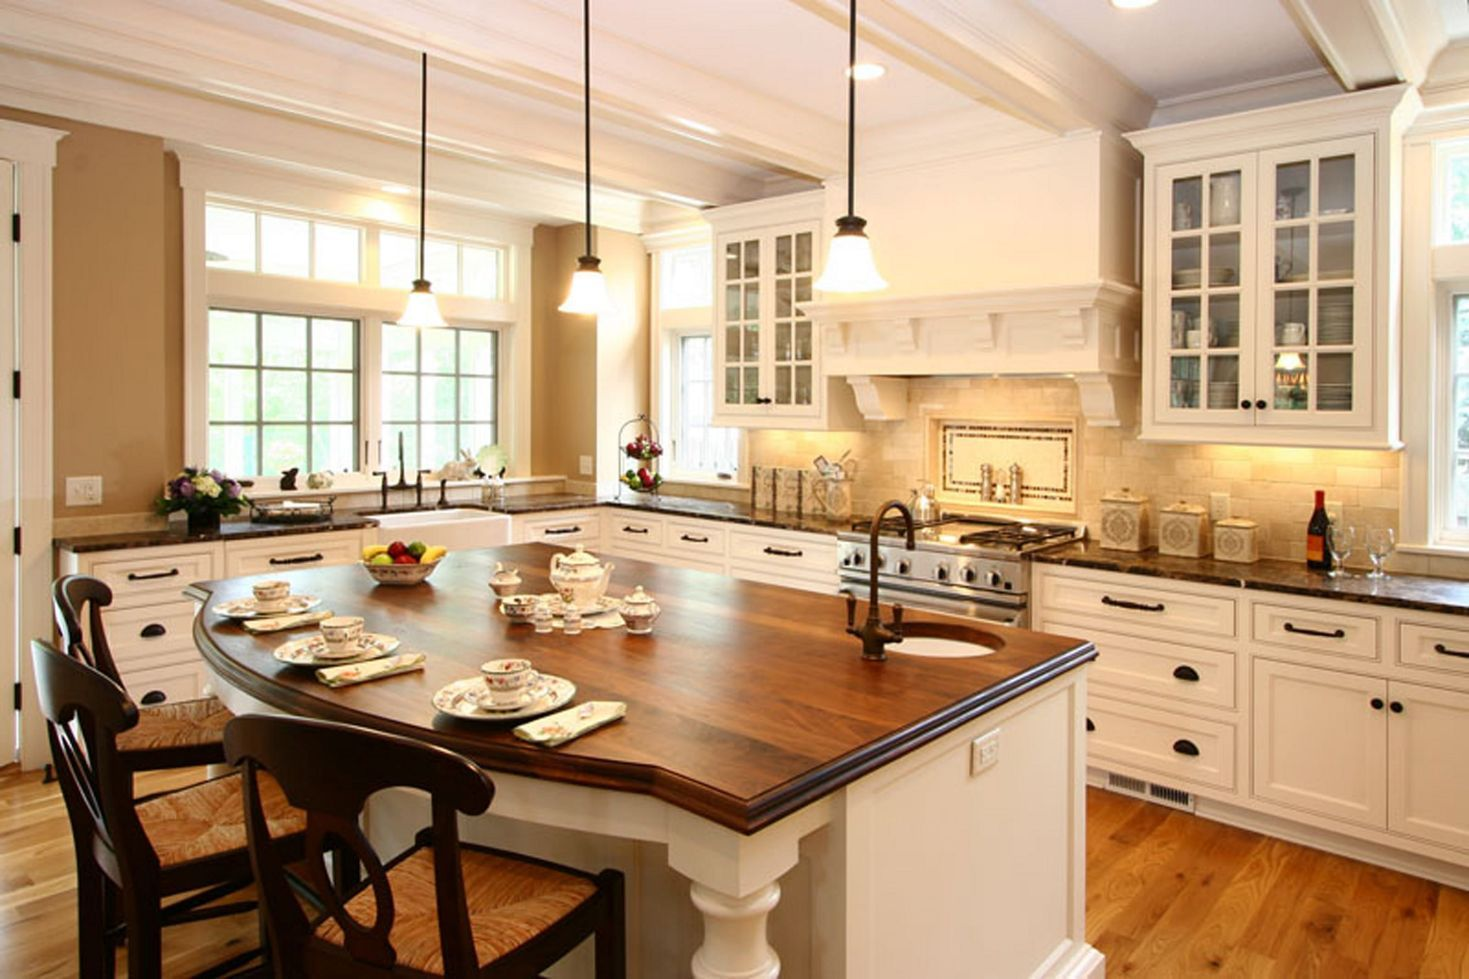 12 Beautiful Simple French Country Kitchen Ideas For Small Space Decorits In 2020 Modern Country Kitchens Country Kitchen Country White Kitchen